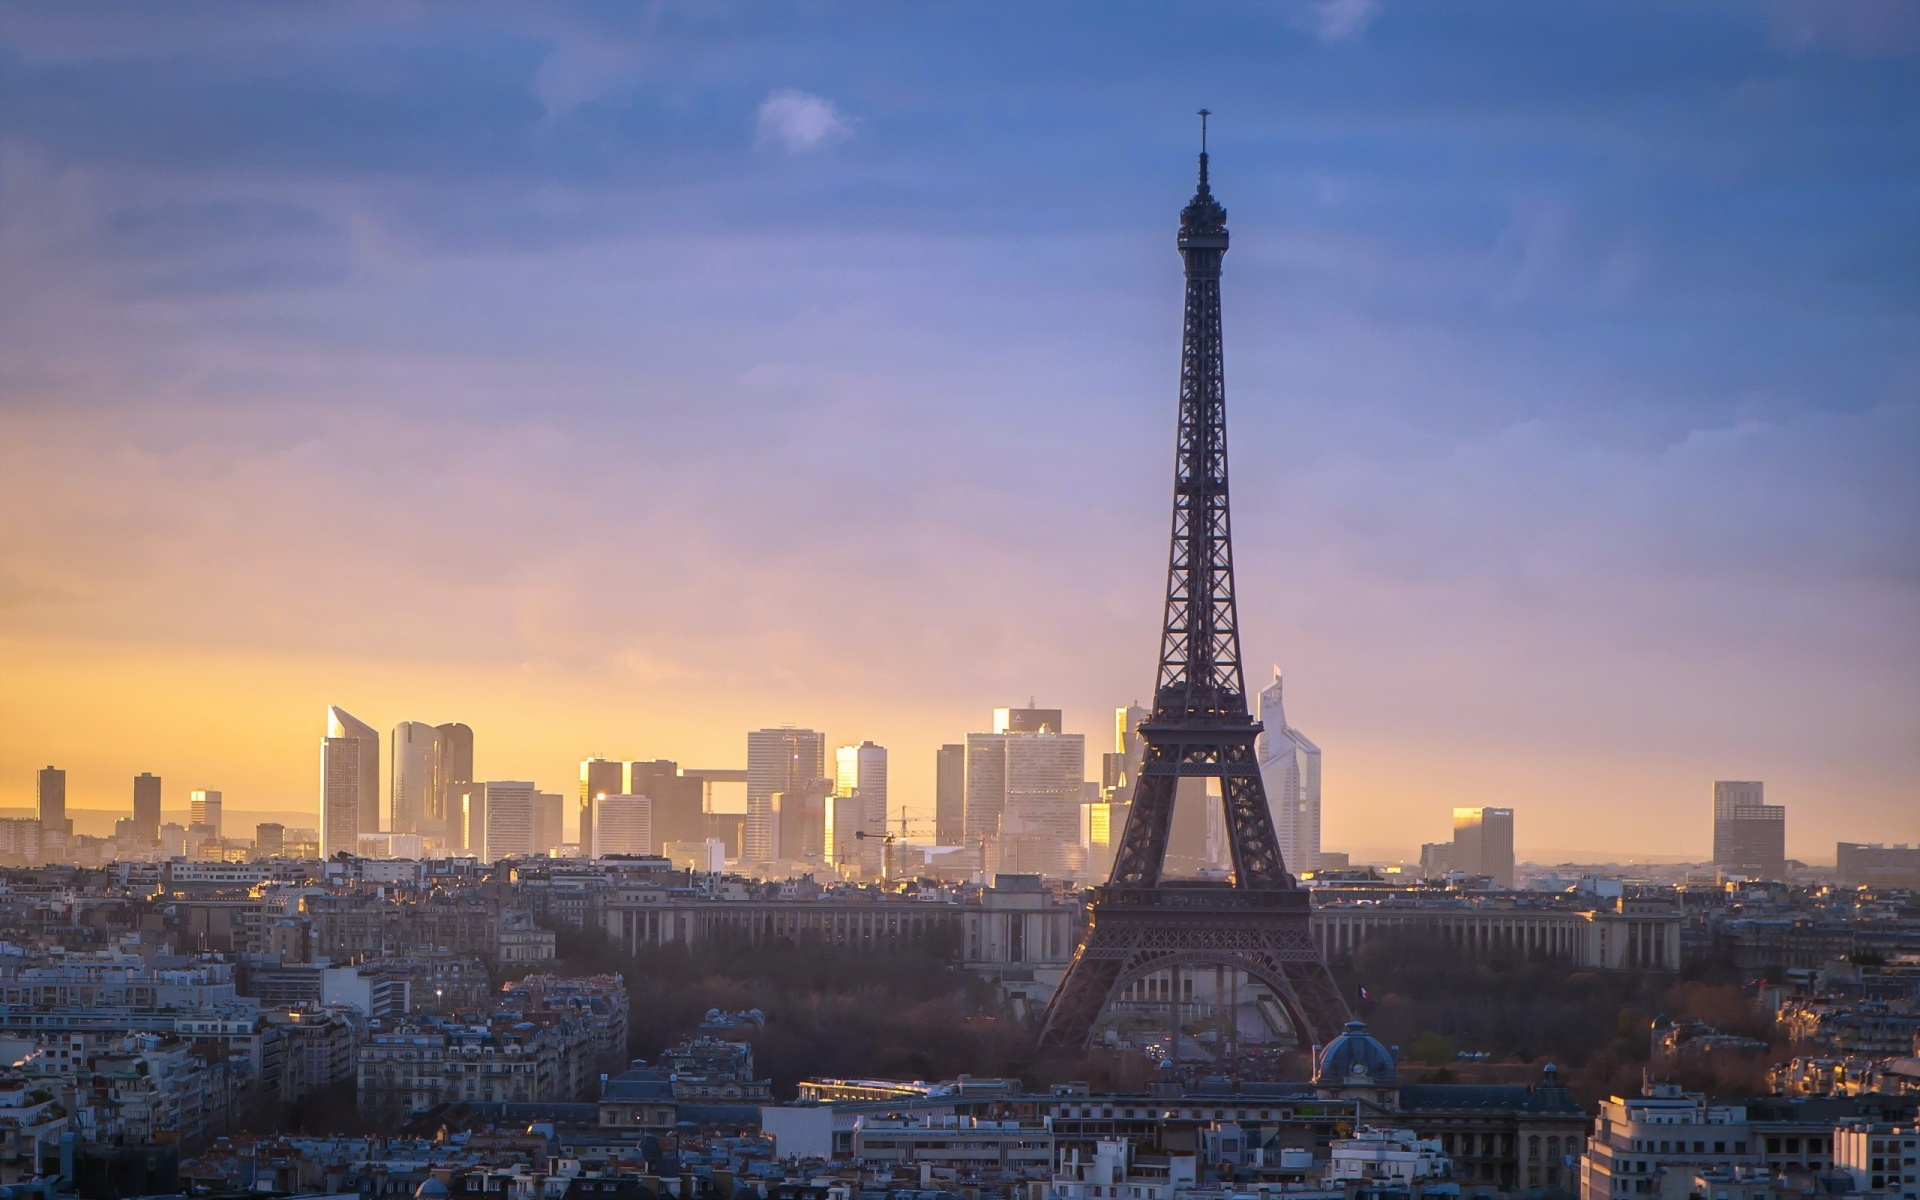 Free Download Paris France Hd Background View Wallpaper 1920x1200 For Your Desktop Mobile Tablet Explore 74 Paris France Wallpaper Wallpaper Of Paris Paris France Wallpaper Desktop Paris France Wallpaper Pictures